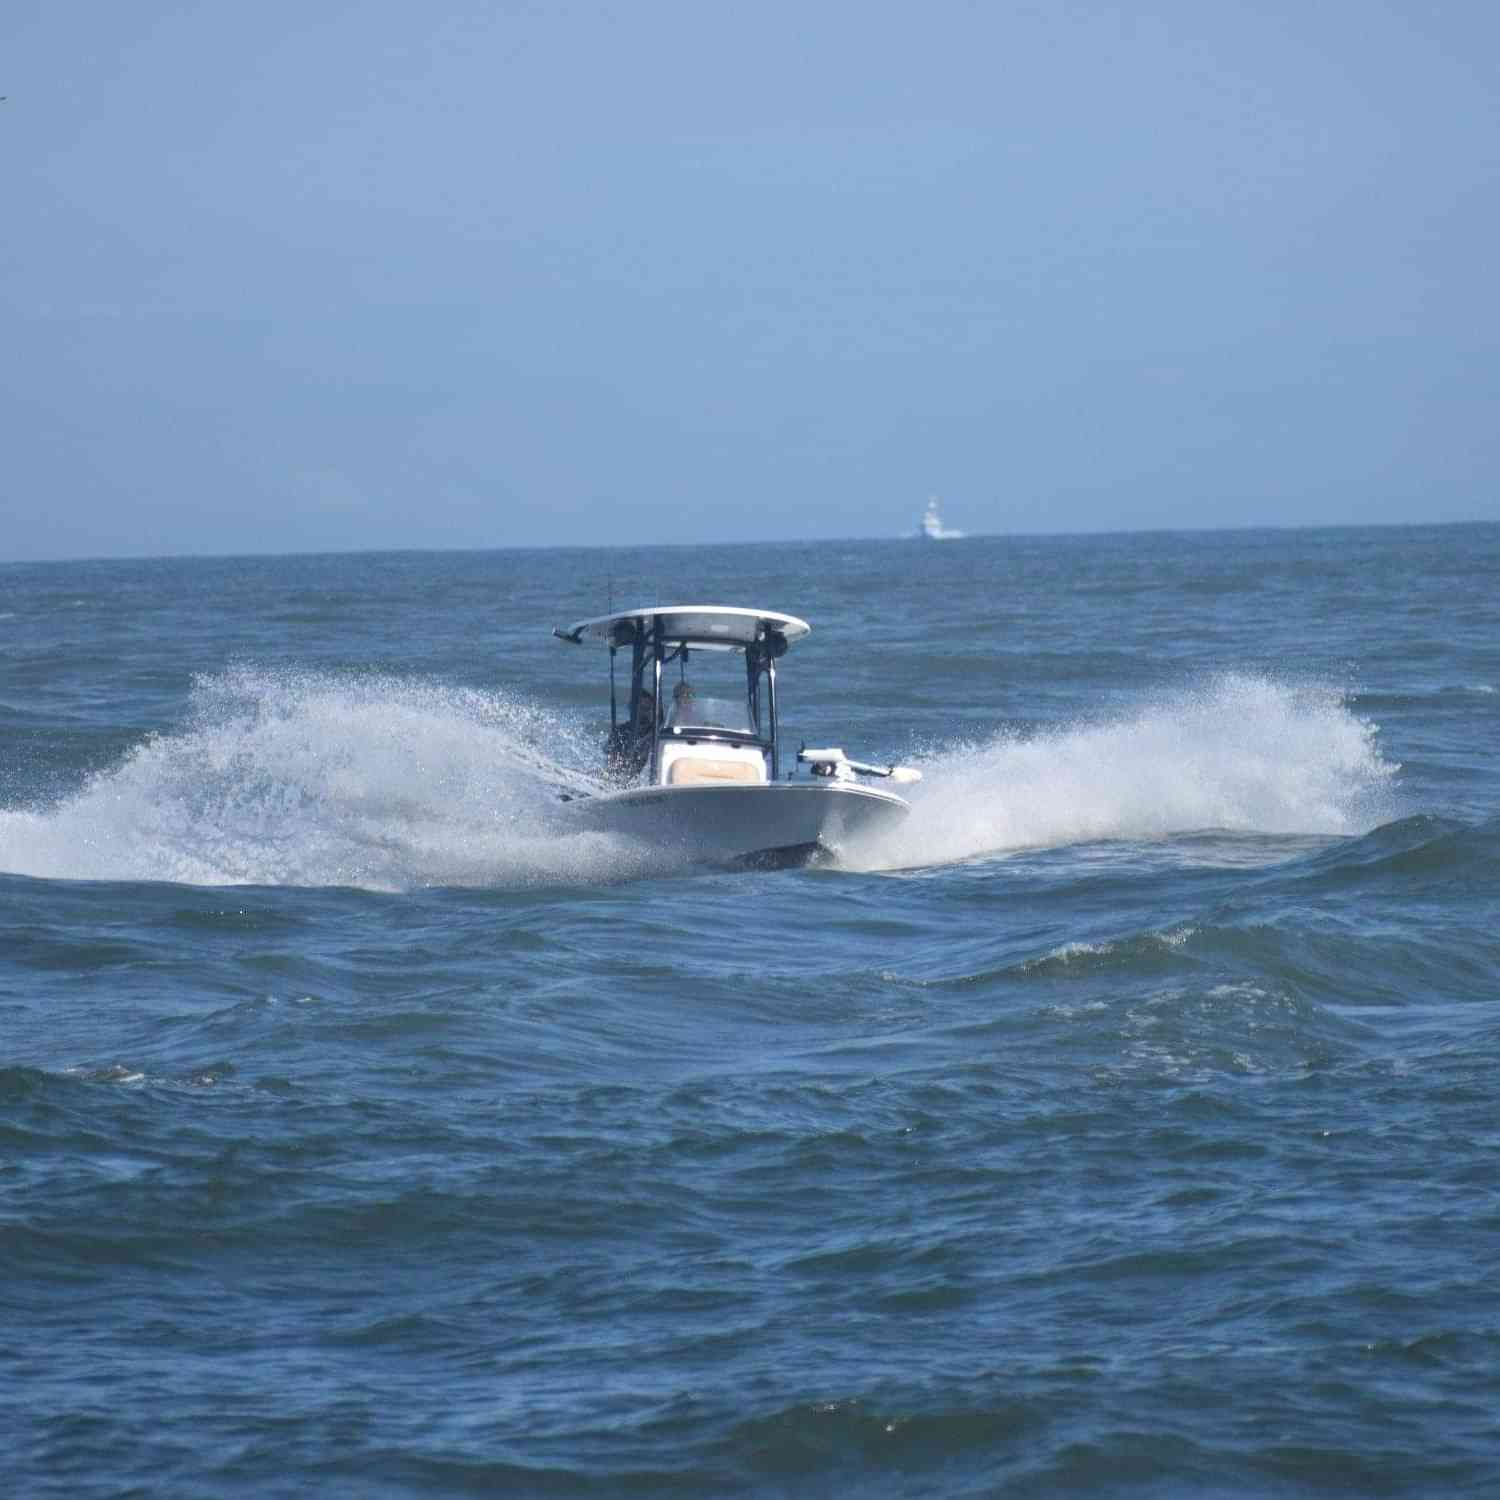 Title: OC inlet during the WMO - On board their Sportsman Masters 227 Bay Boat - Location: Ocean City Md. Participating in the Photo Contest #SportsmanAugust2020